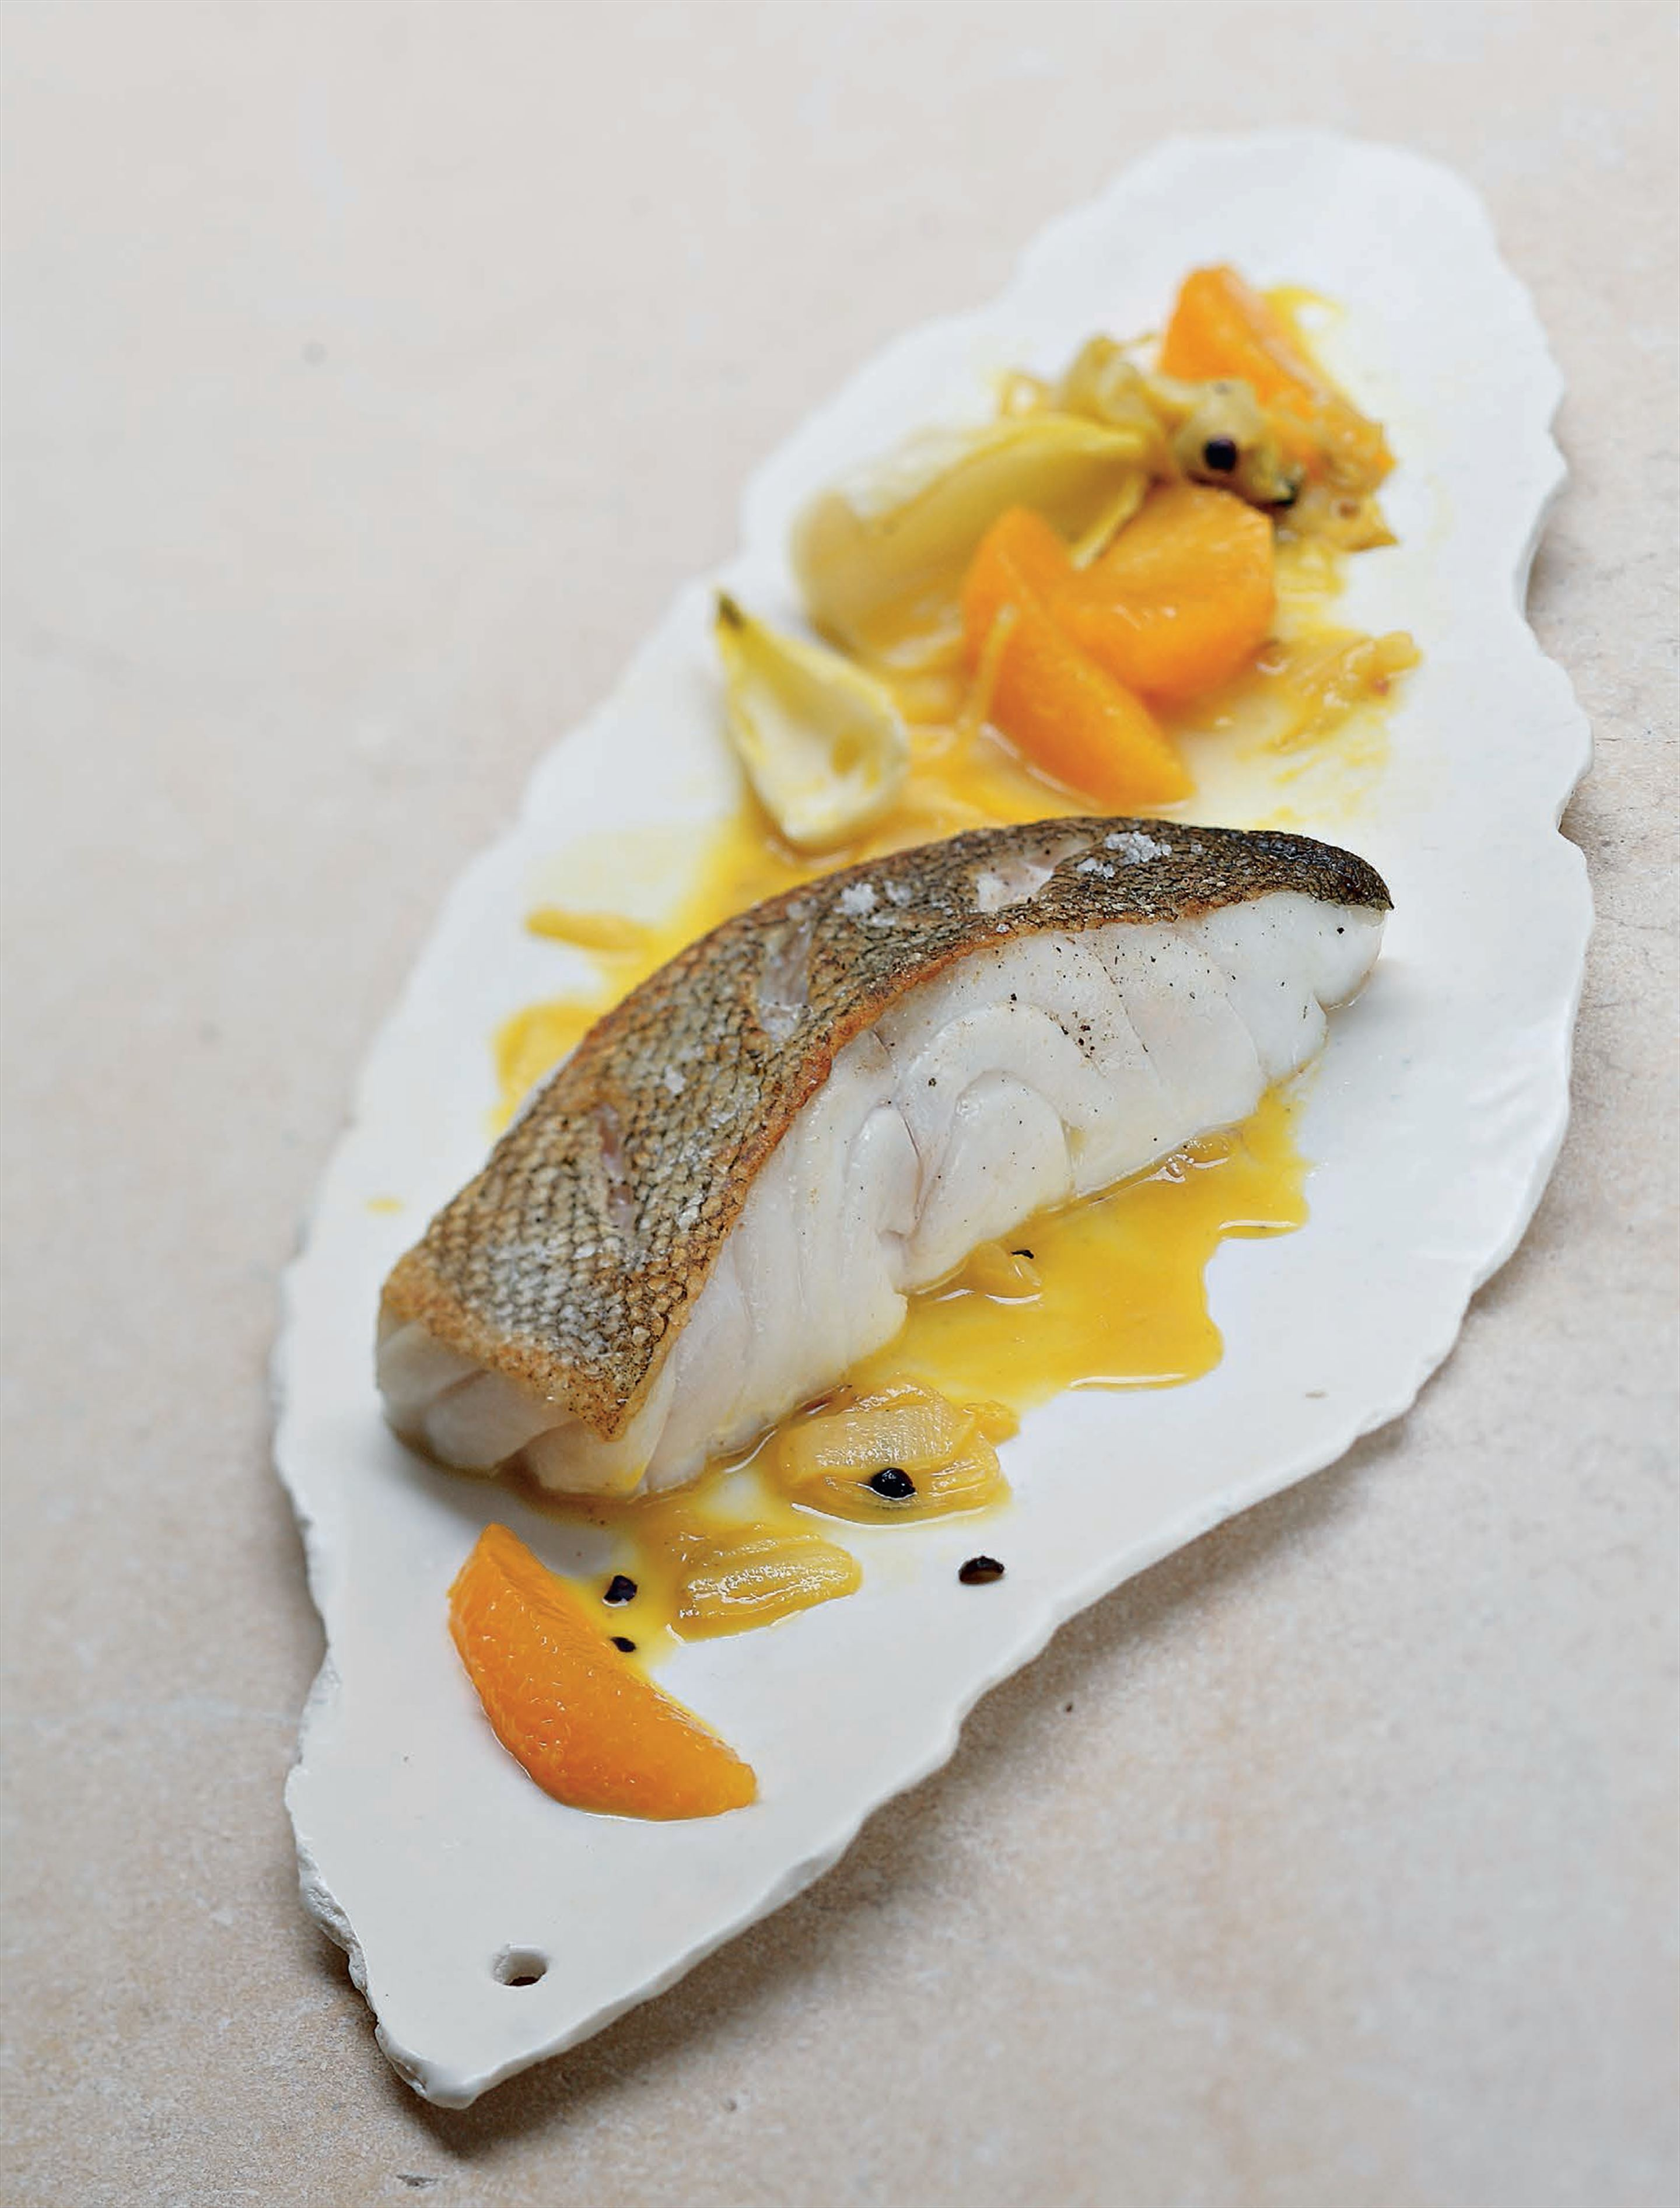 Cod with slow-cooked endives in orange